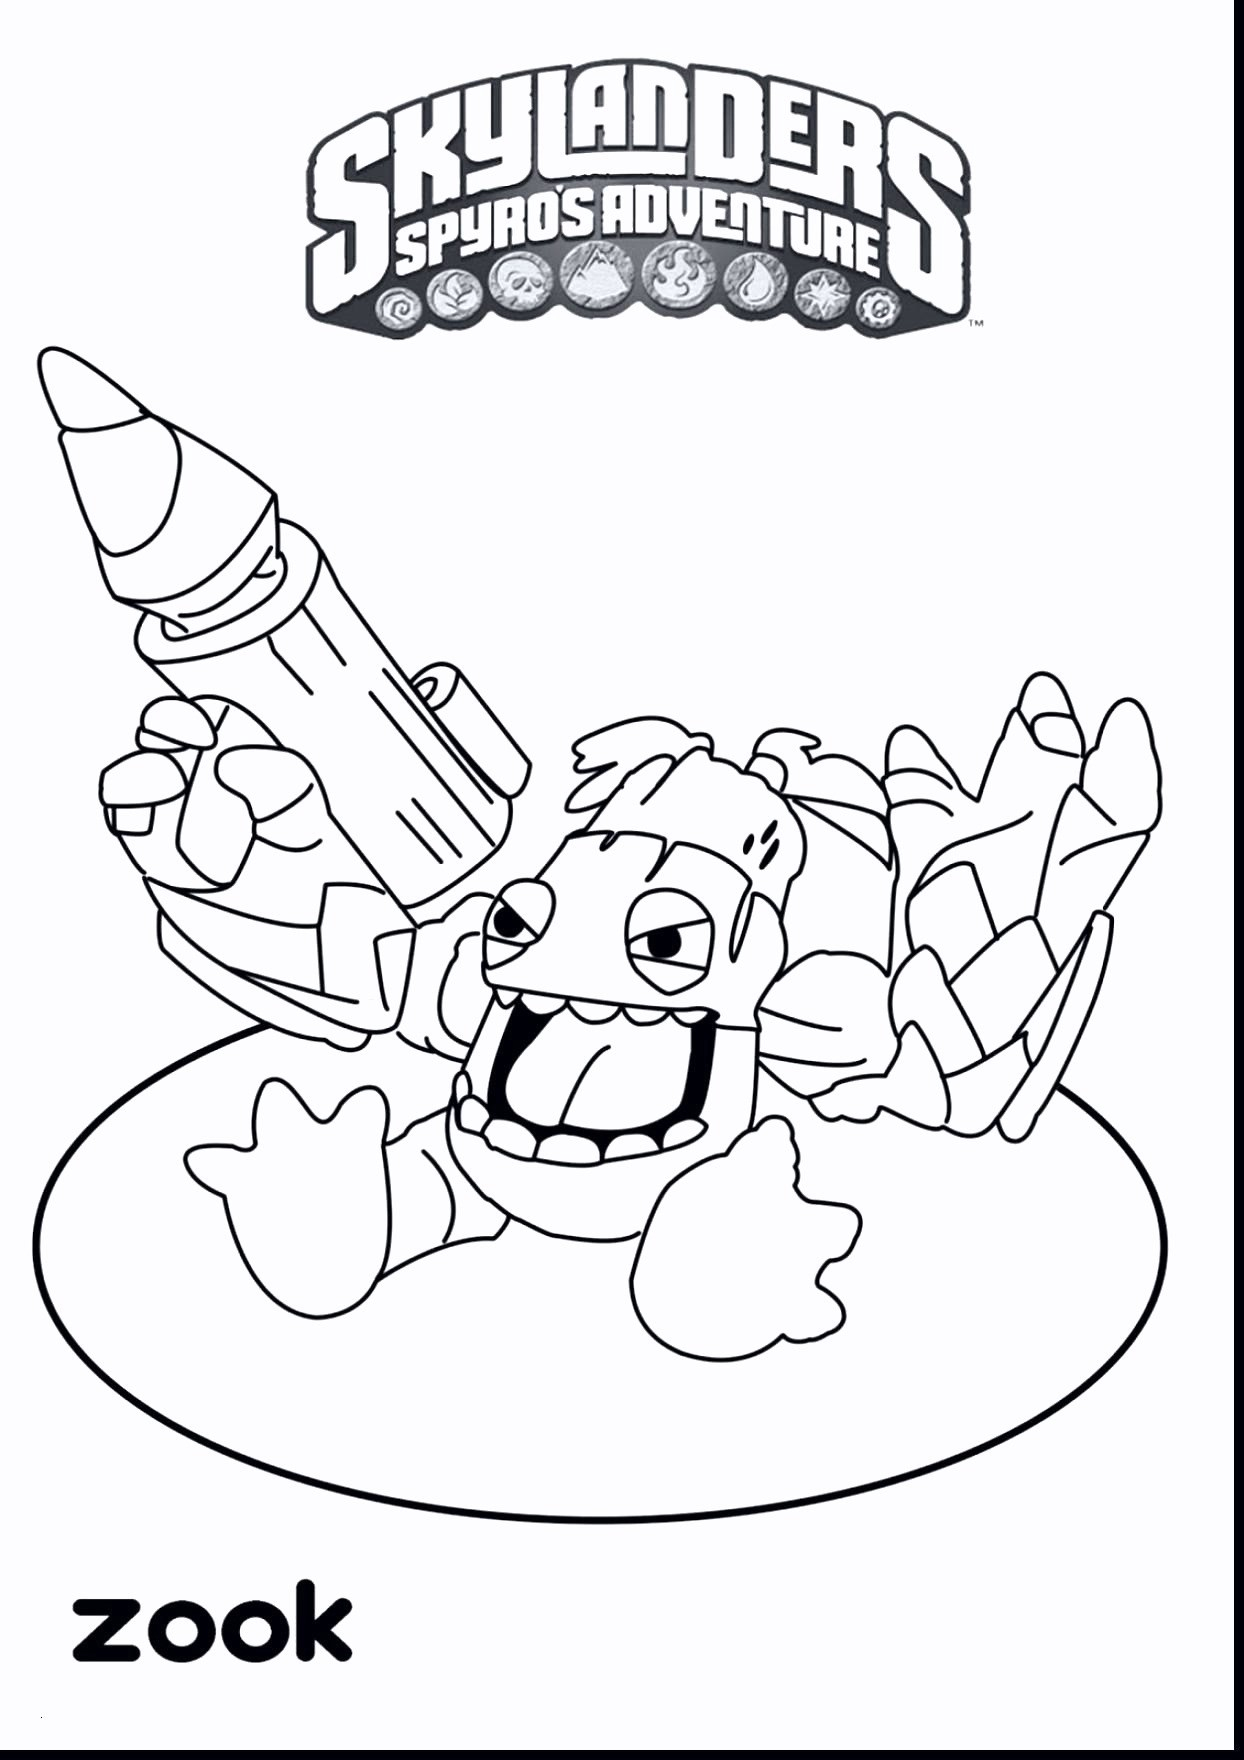 Body Coloring Pages for Preschoolers  Gallery 7d - To print for your project